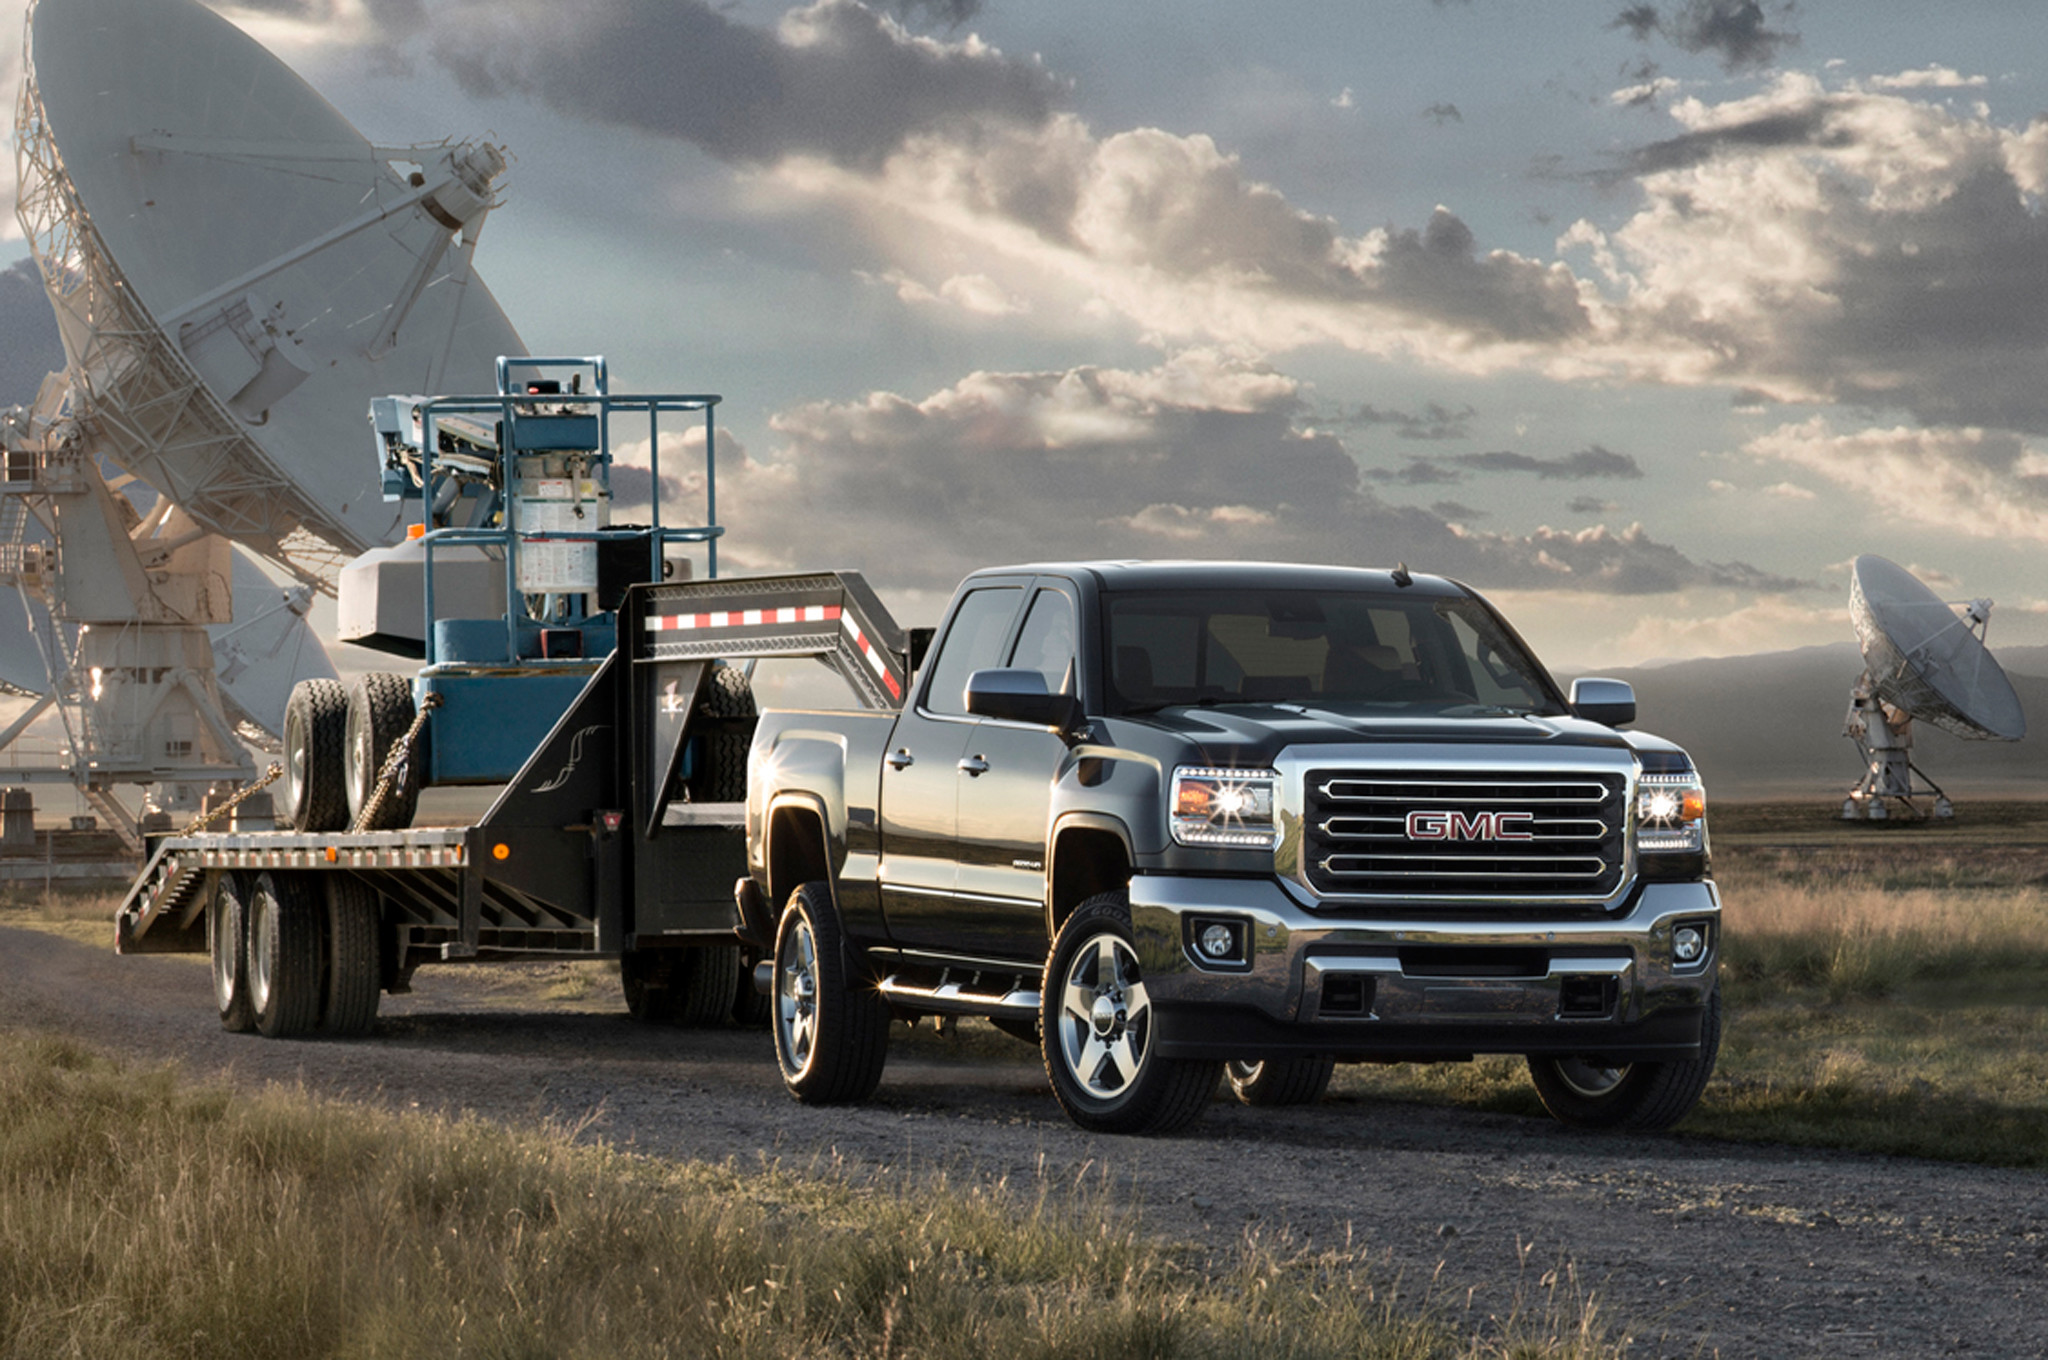 2048x1360 455 best Truck love images on Pinterest | Lifted trucks, Pickup trucks and  Diesel trucks